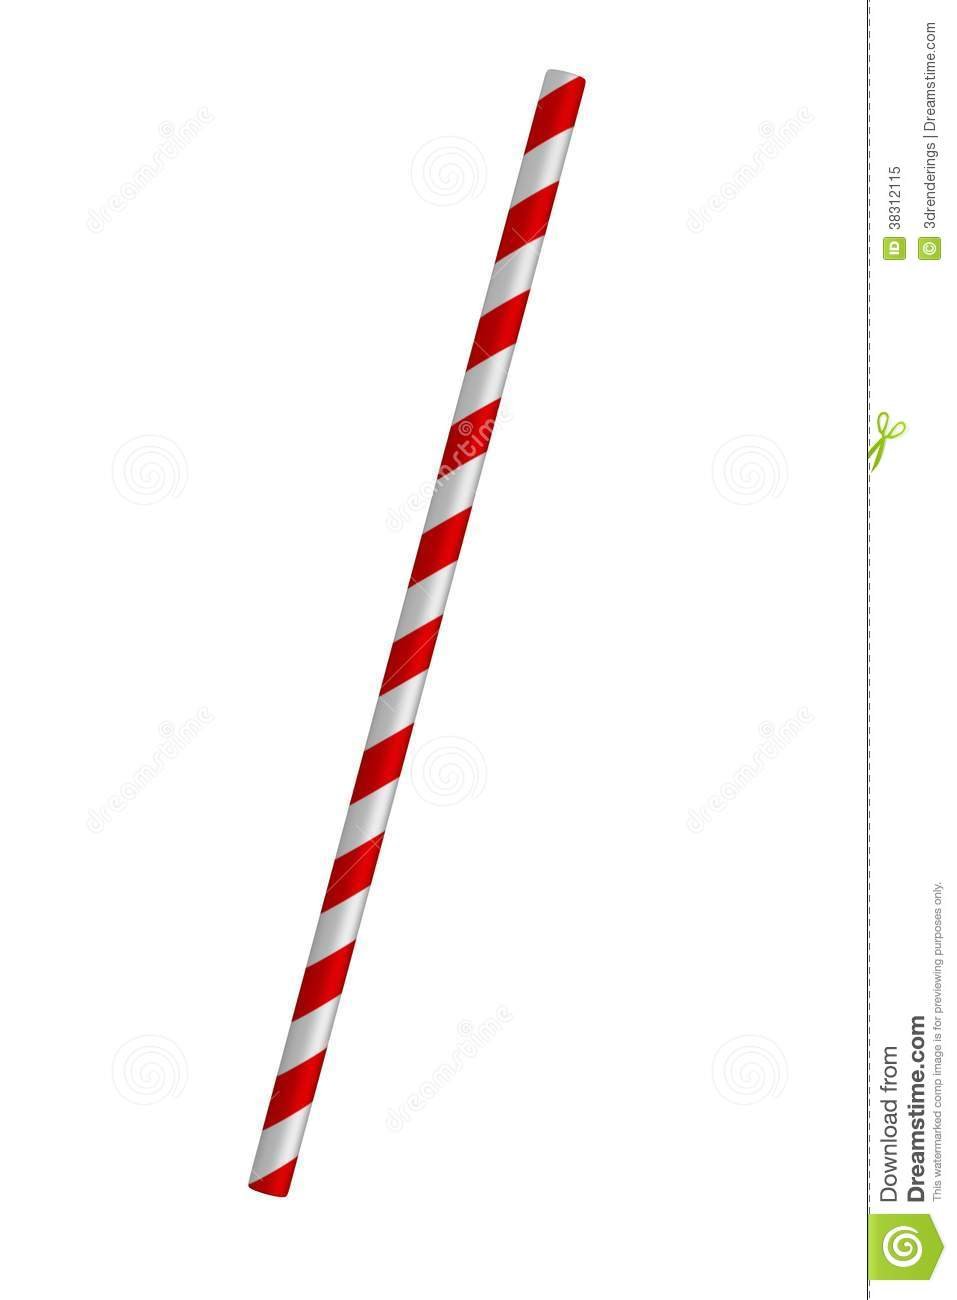 Drinking straws clipart.